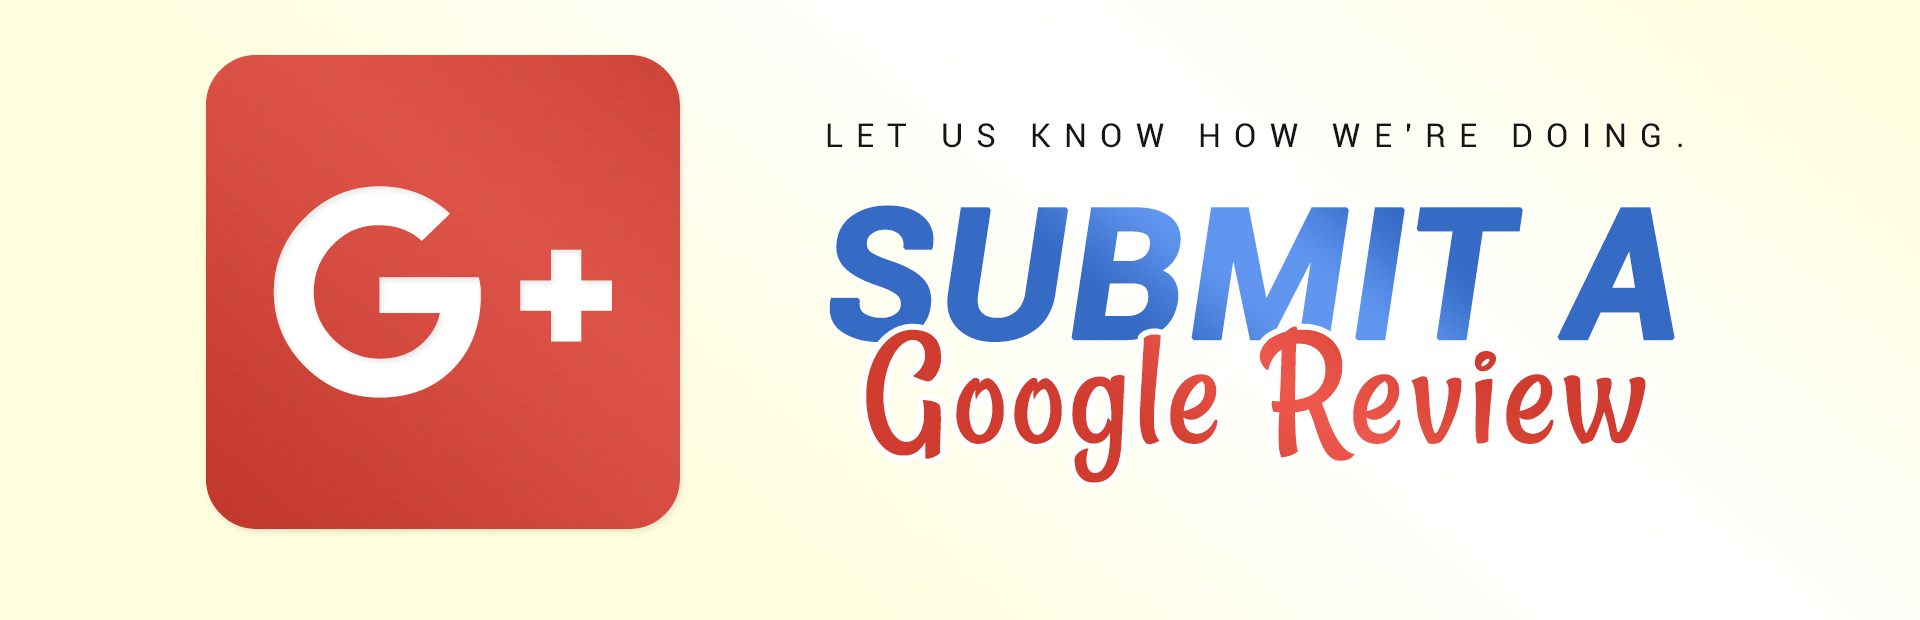 Let us know how we're doing. Submit a Google review today.